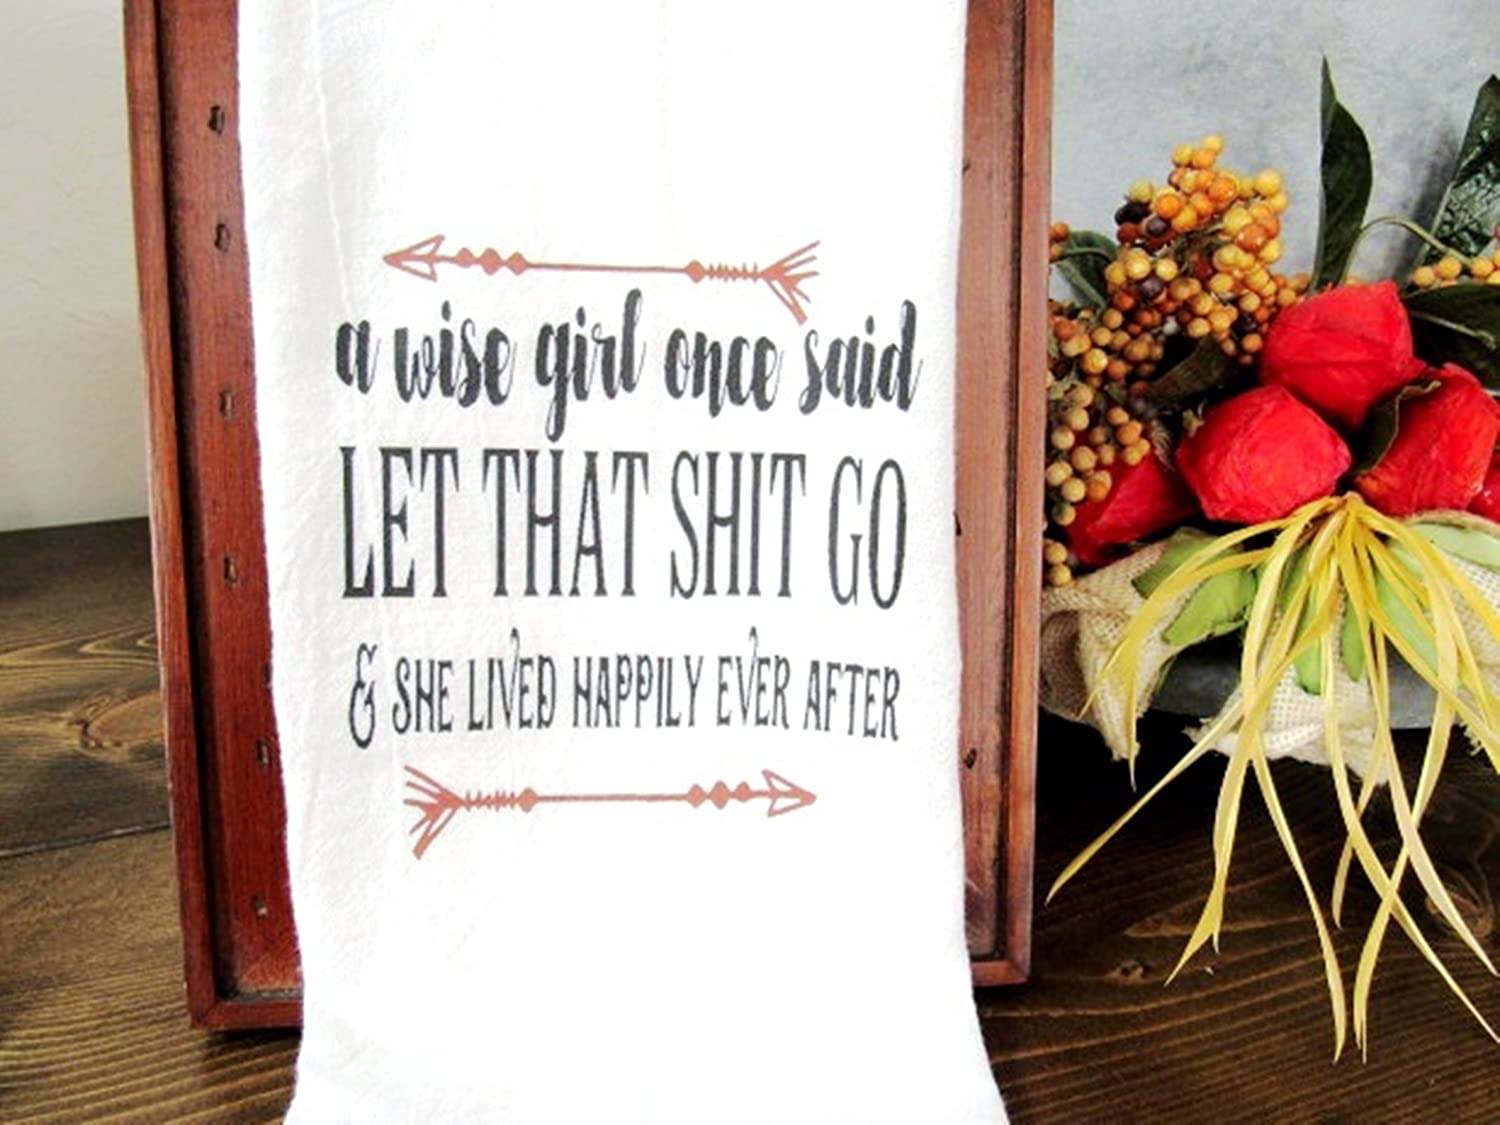 A wise girl once said Dish towel Funny Tea Towel 28x28 Kitchen Flour Sack Towel Farmhouse A wise girl once said let that shit go Sassy hostess gift fun gift Wine bag fs154